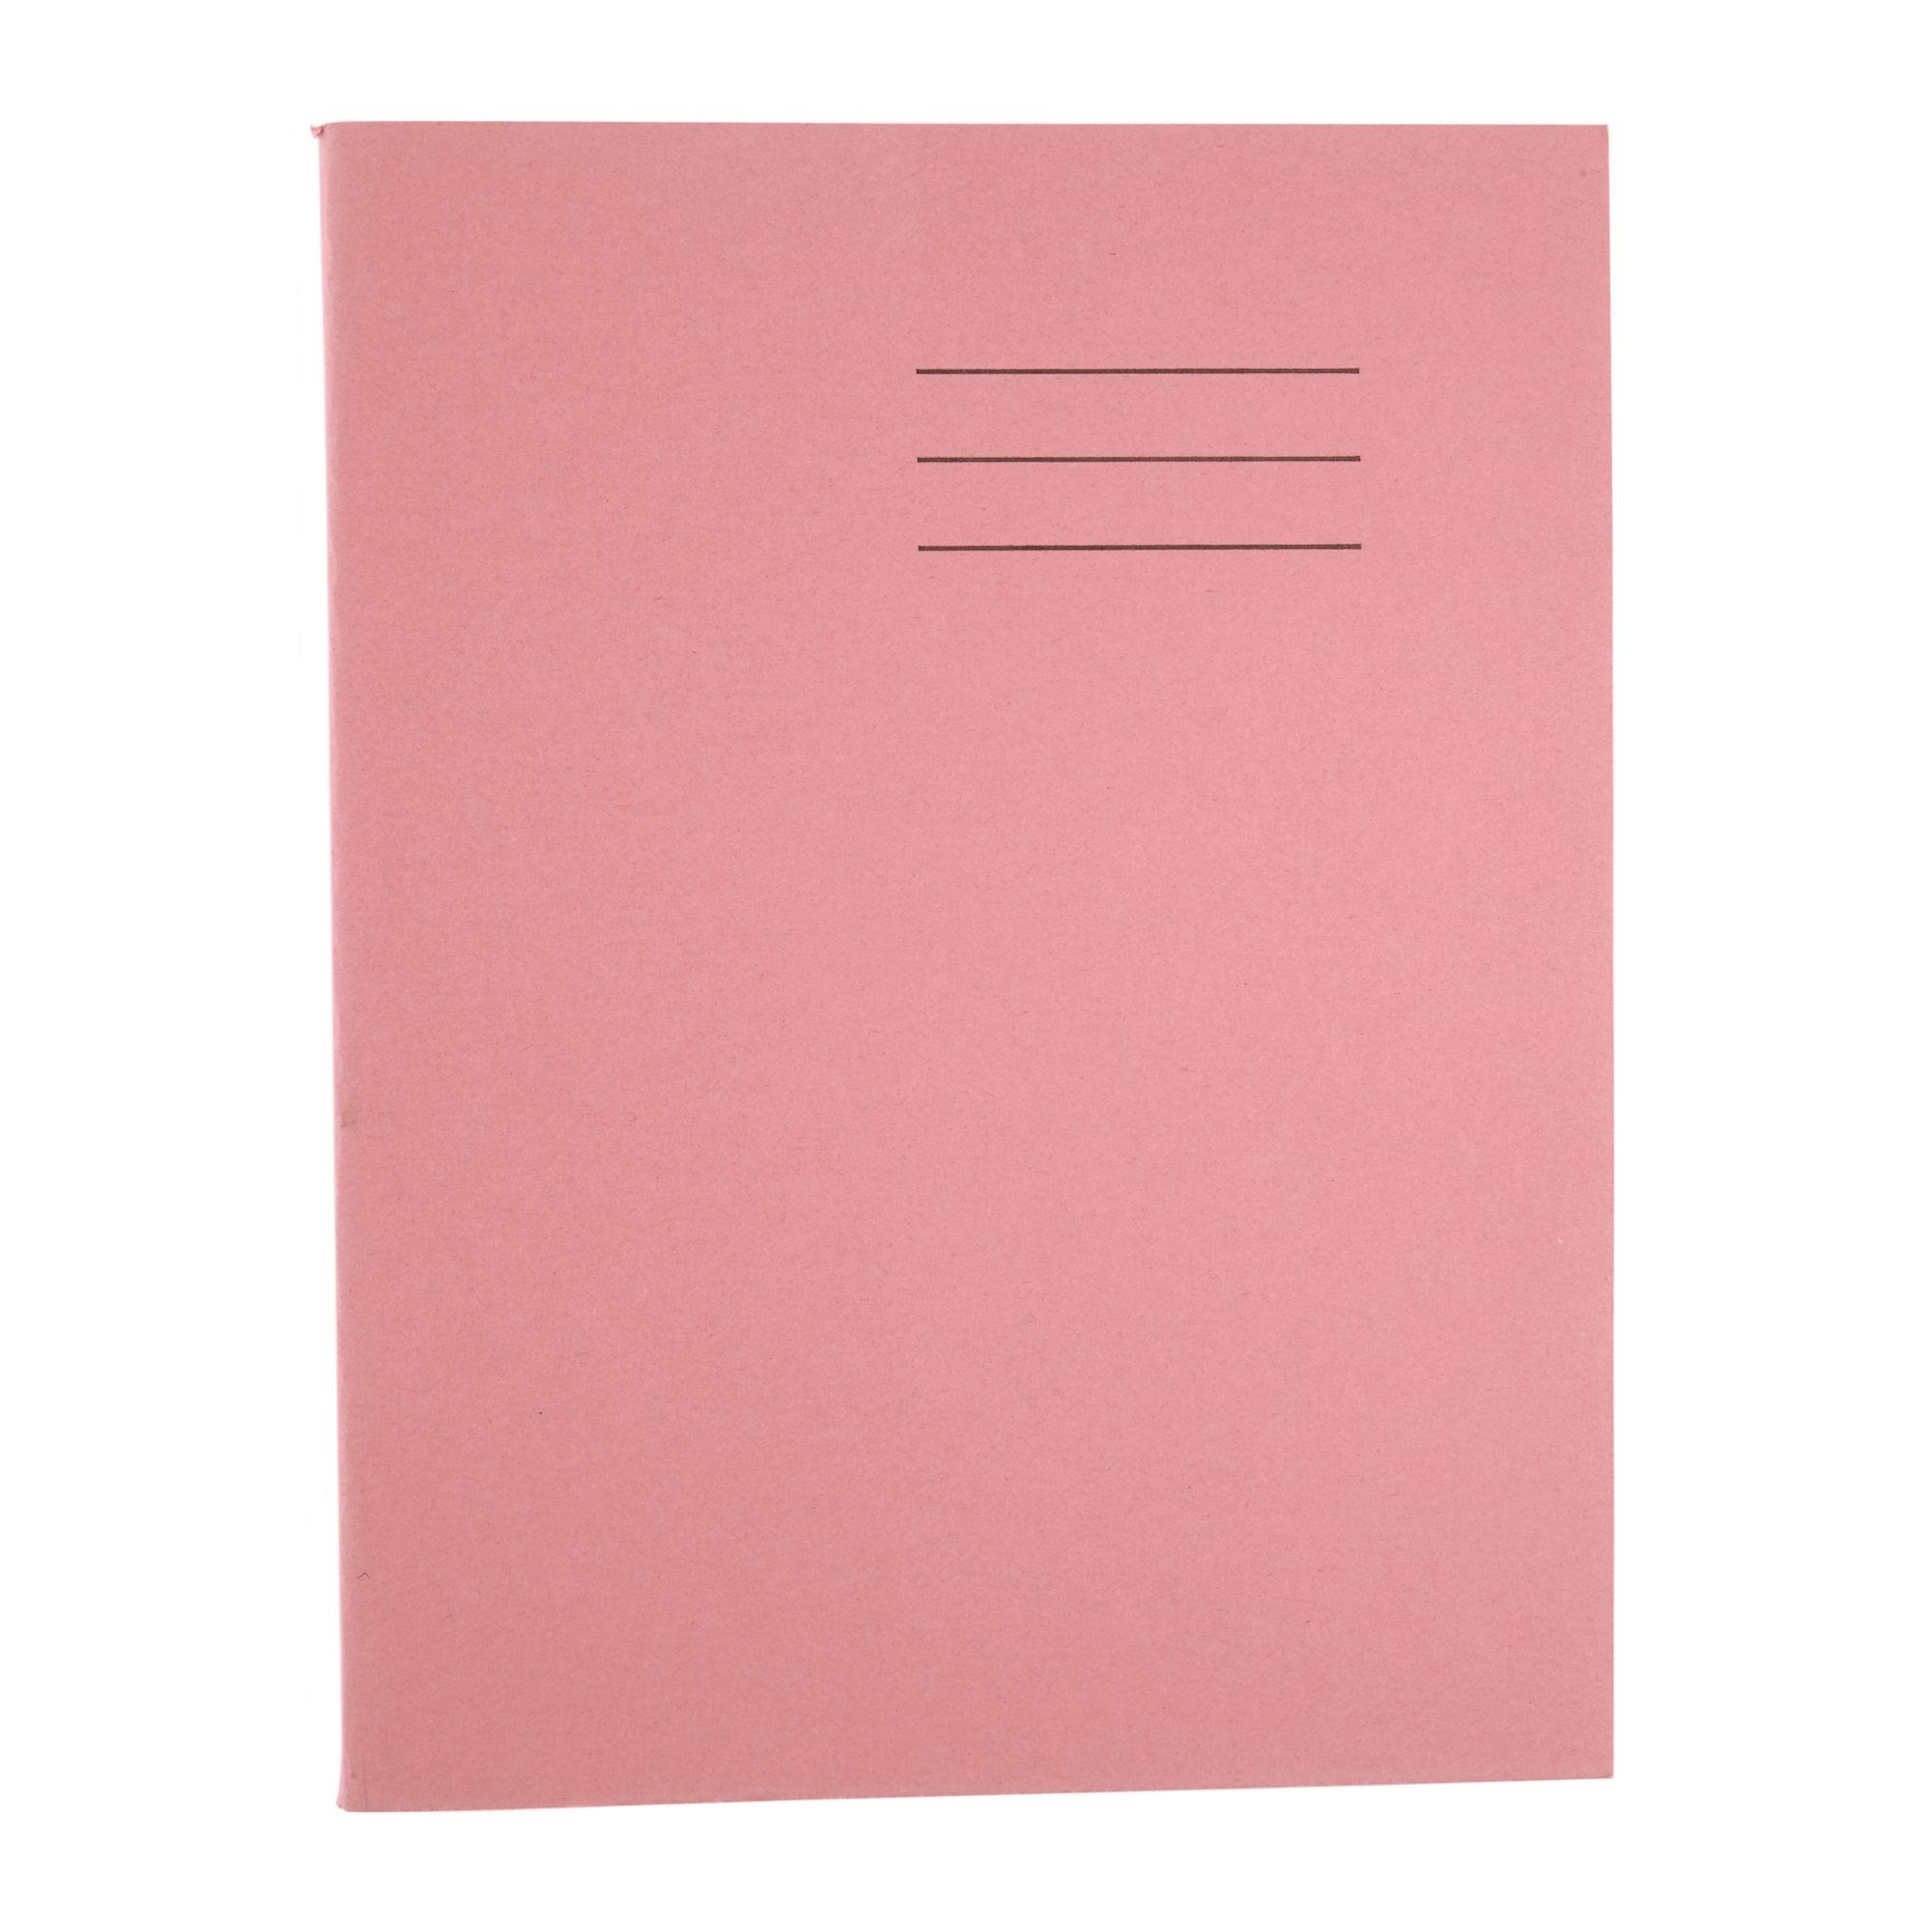 9x7 Exercise Book 48 Page 8mm Ruled with Margin Dark Green (Pack of 100)